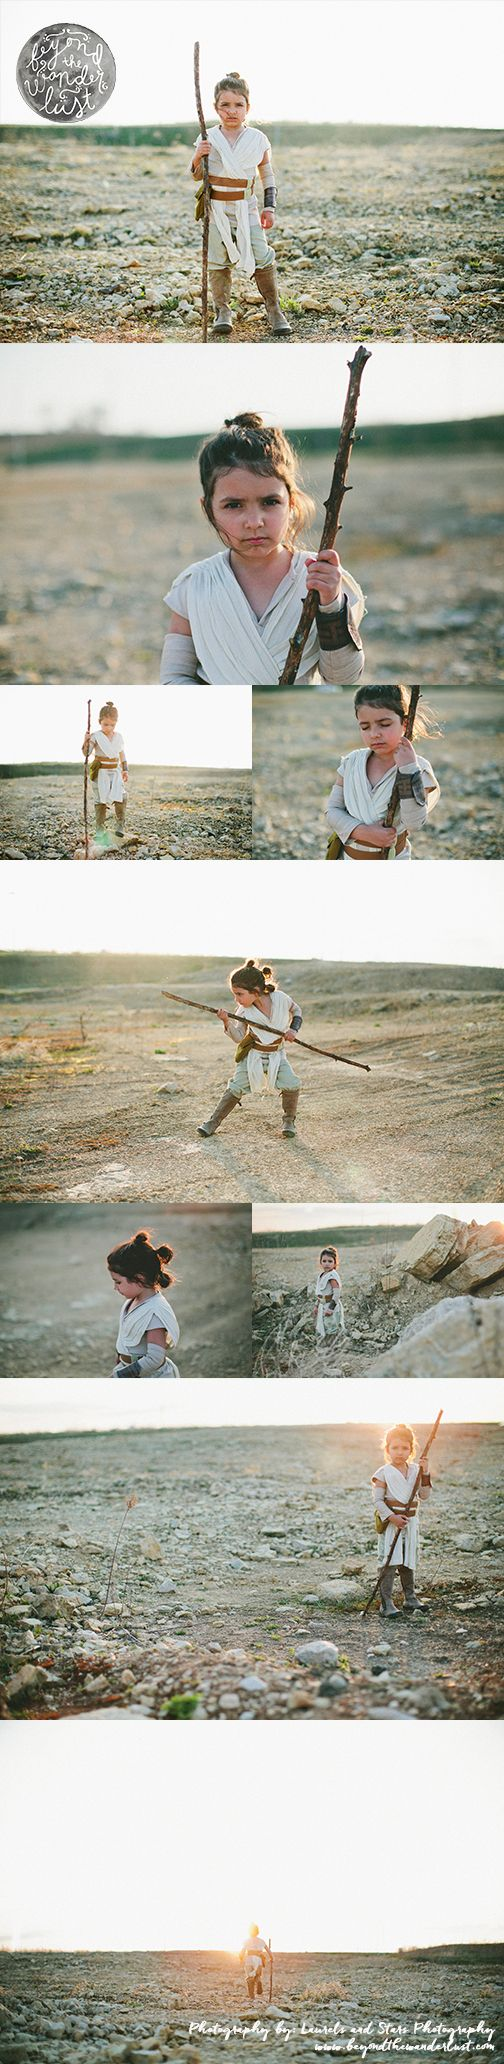 Halloween costume ideas, kid Star Wars costumes, kid picture ideas, styled picture ideas, mini session picture ideas